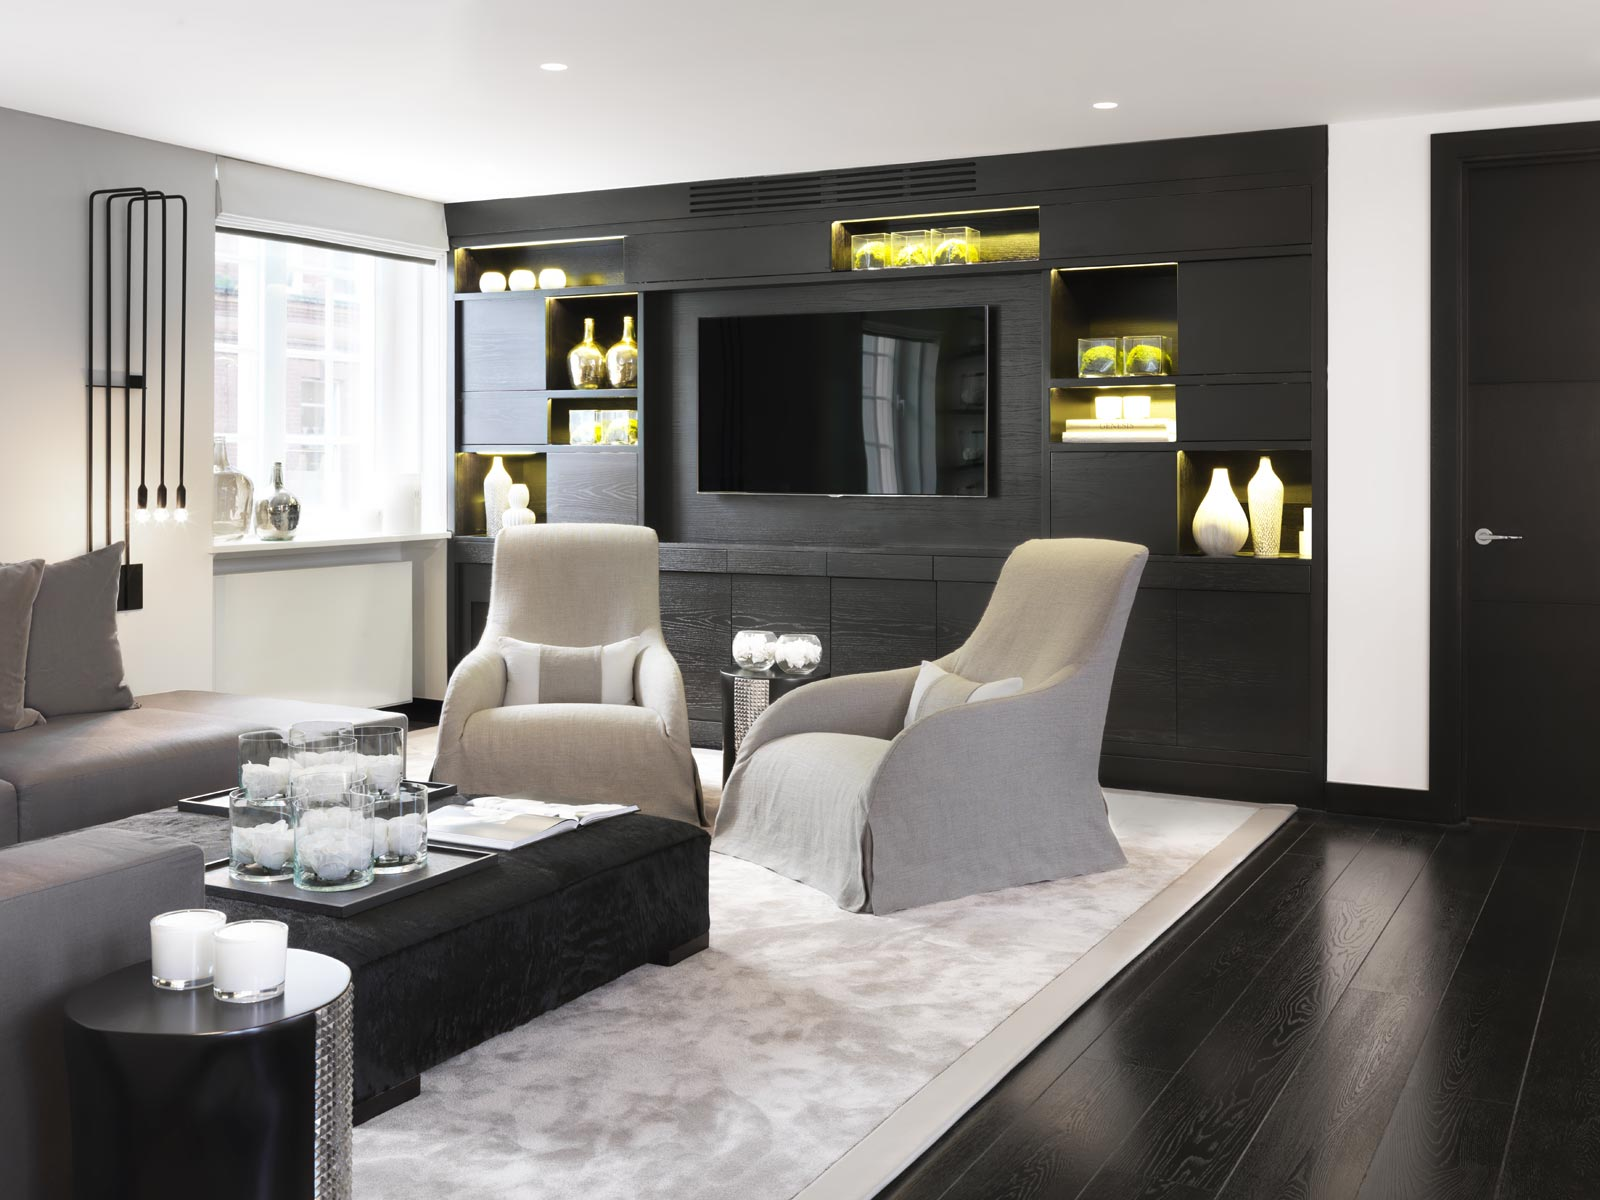 Interior Designers: The Top 10 Designers in London You Need to Know interior designers Interior Designers: The Top 10 Designers in London You Need to Know pied a terre london3